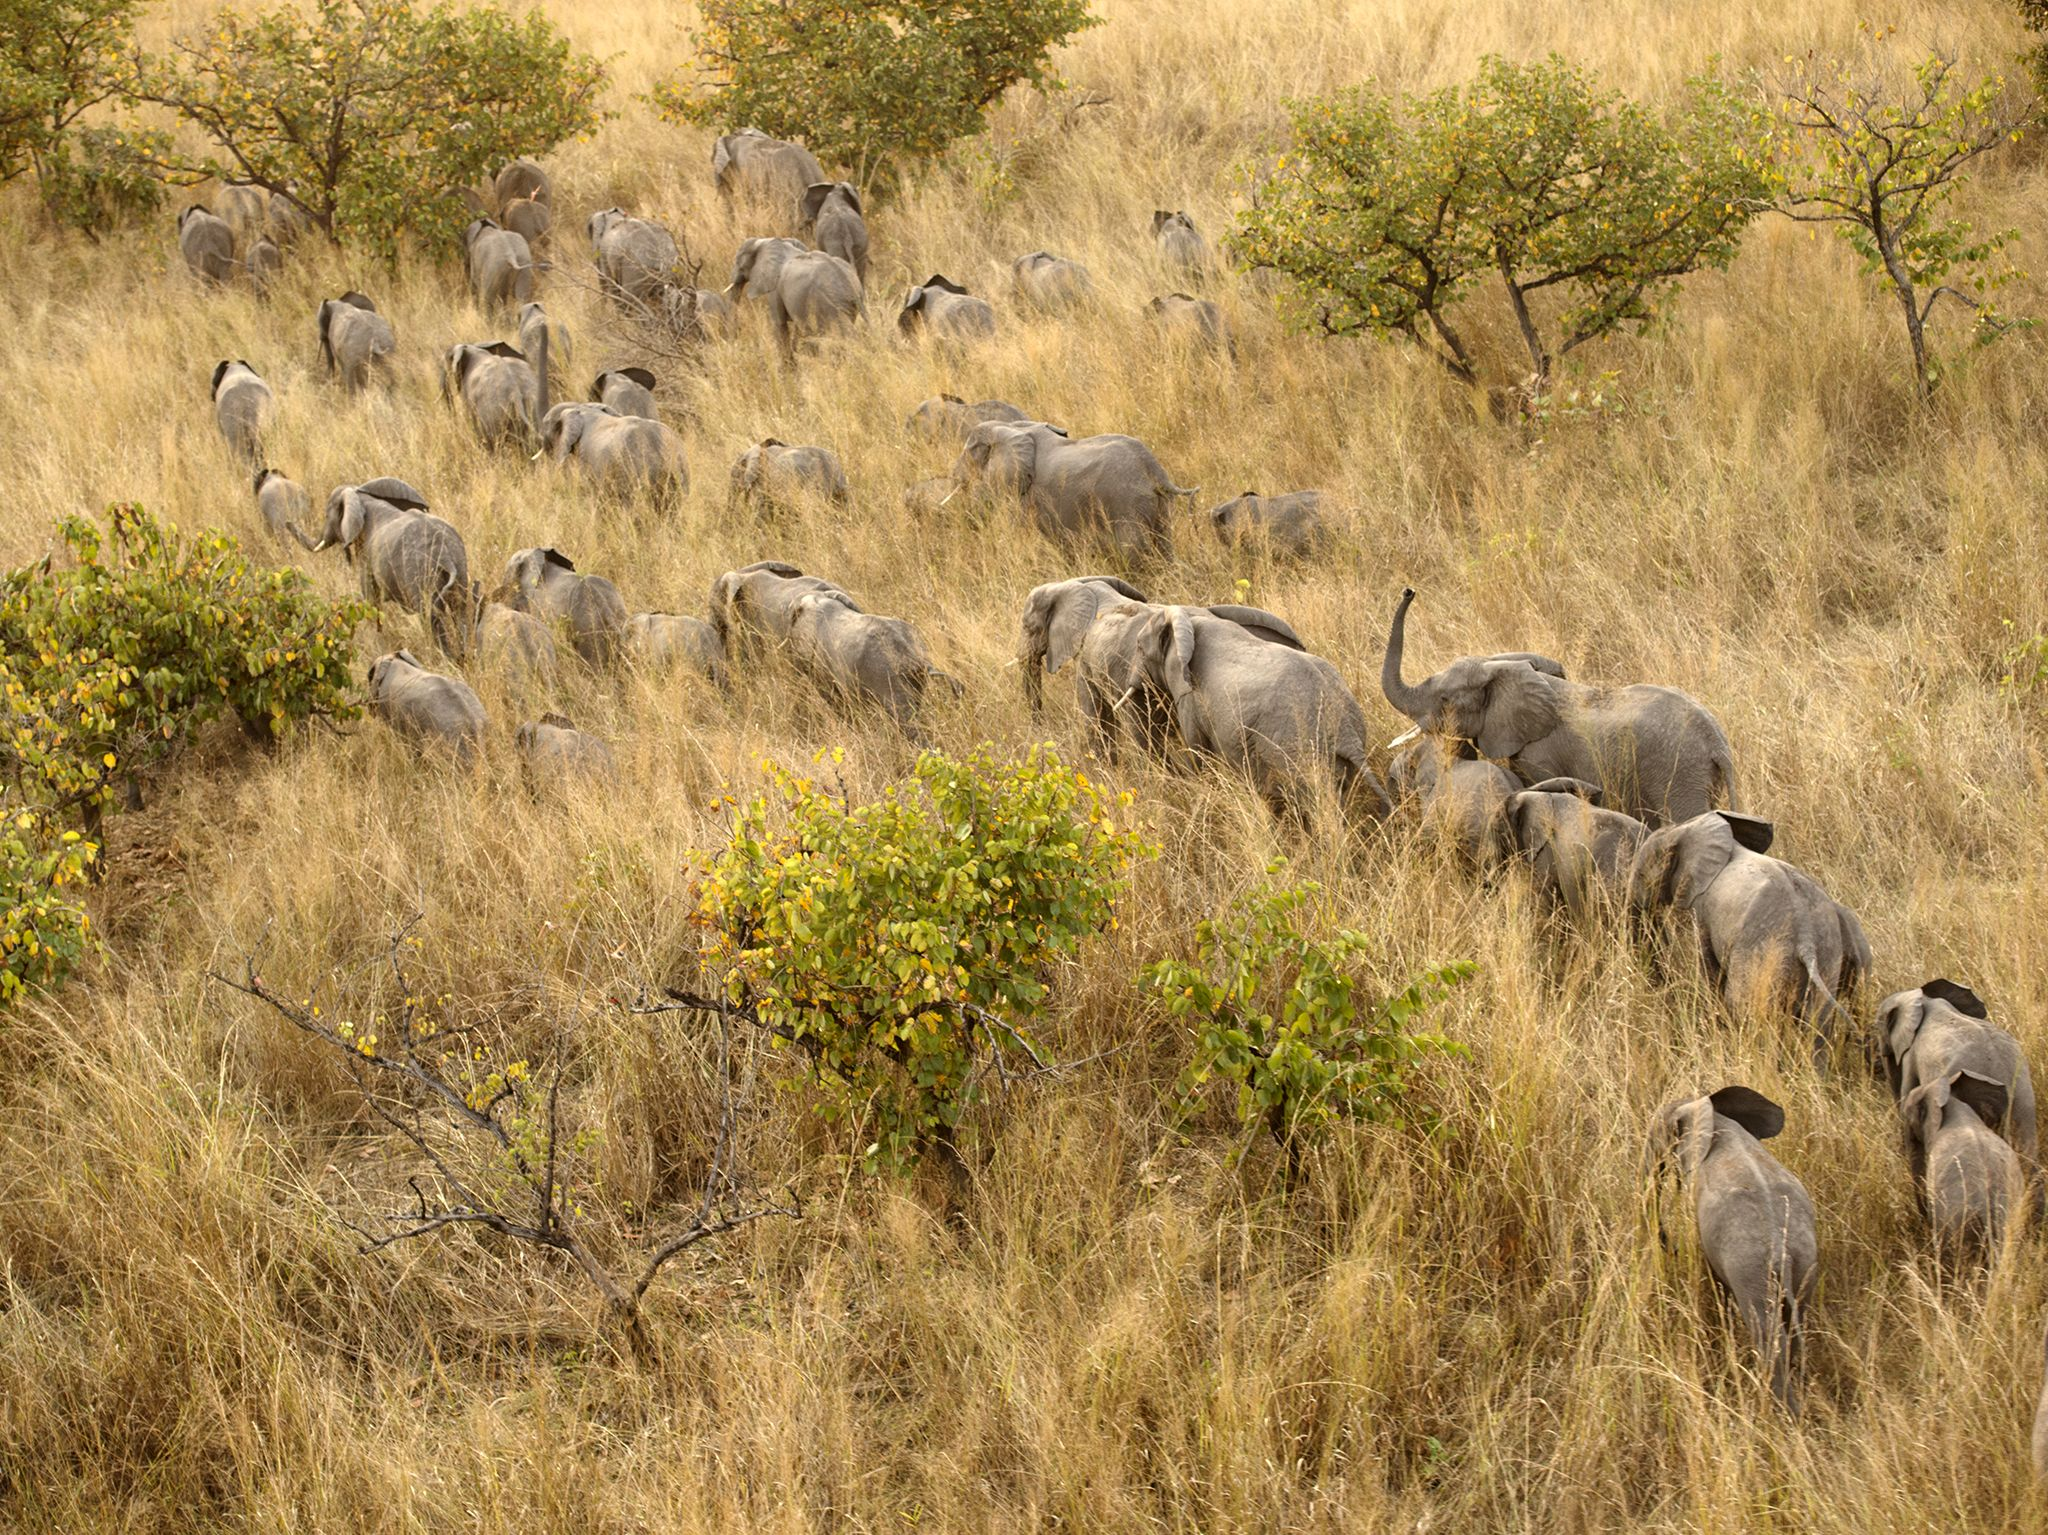 In 1977 there were 22,000 elephants in Garamba National Park. Today there are less than 1,200... [Photo of the day - April 2019]